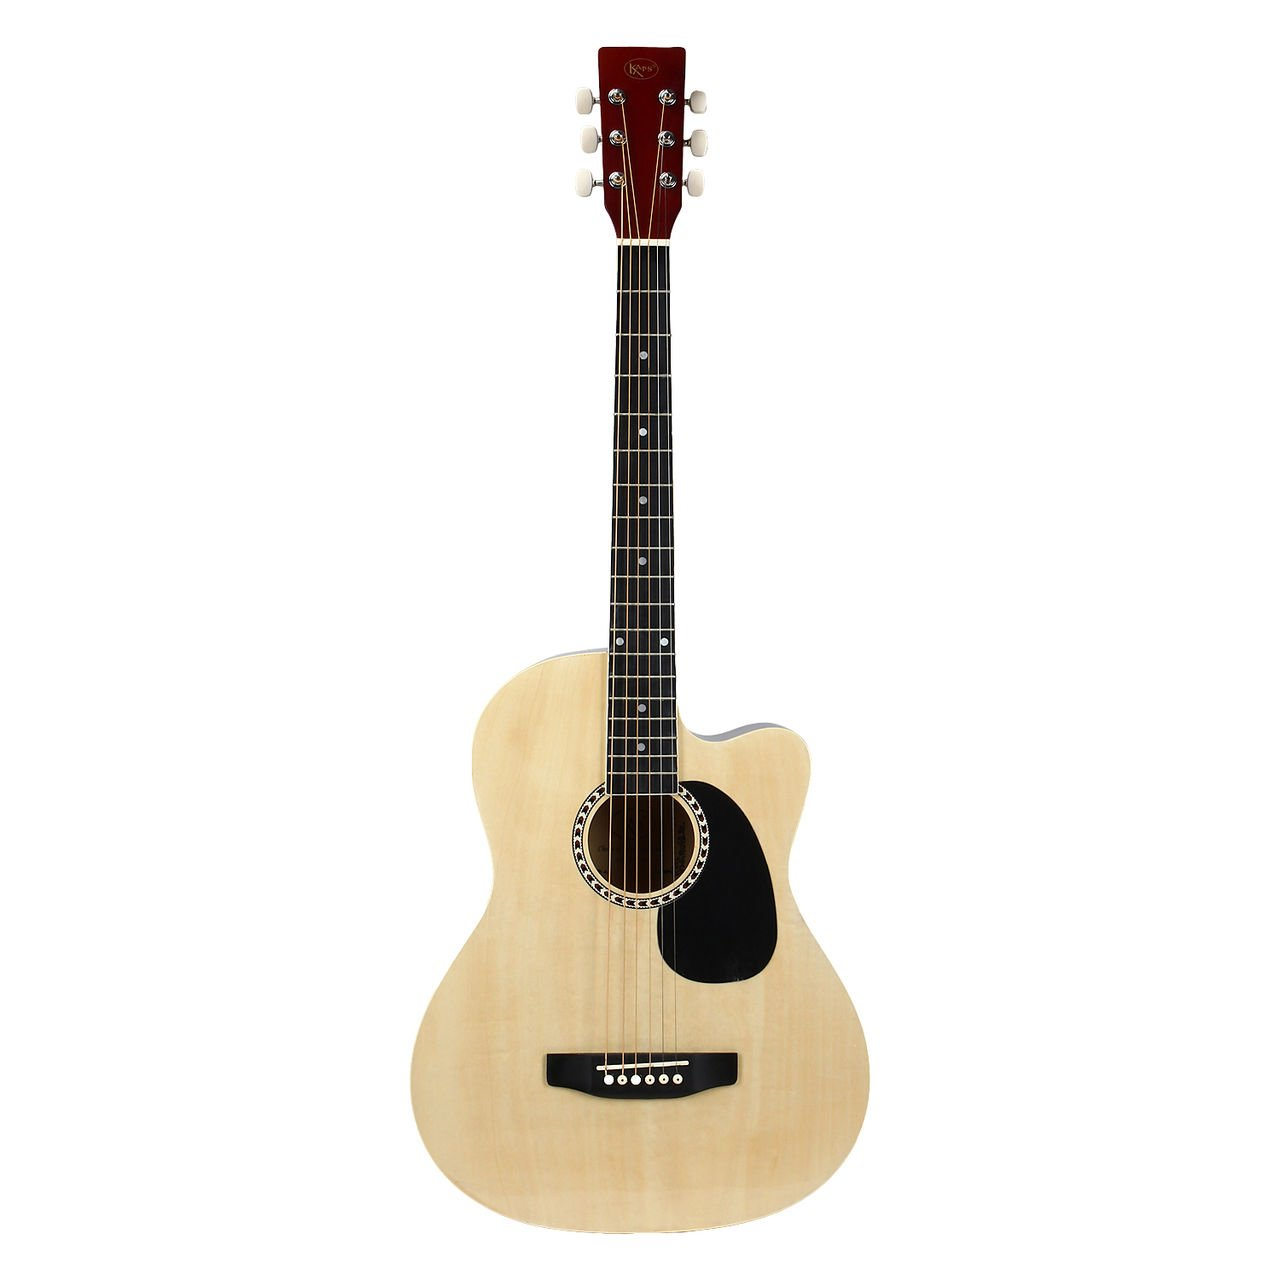 2f59f853d3f Kaps St - 1CM, 6-Strings, Acoustic Guitar: Amazon.in: Electronics